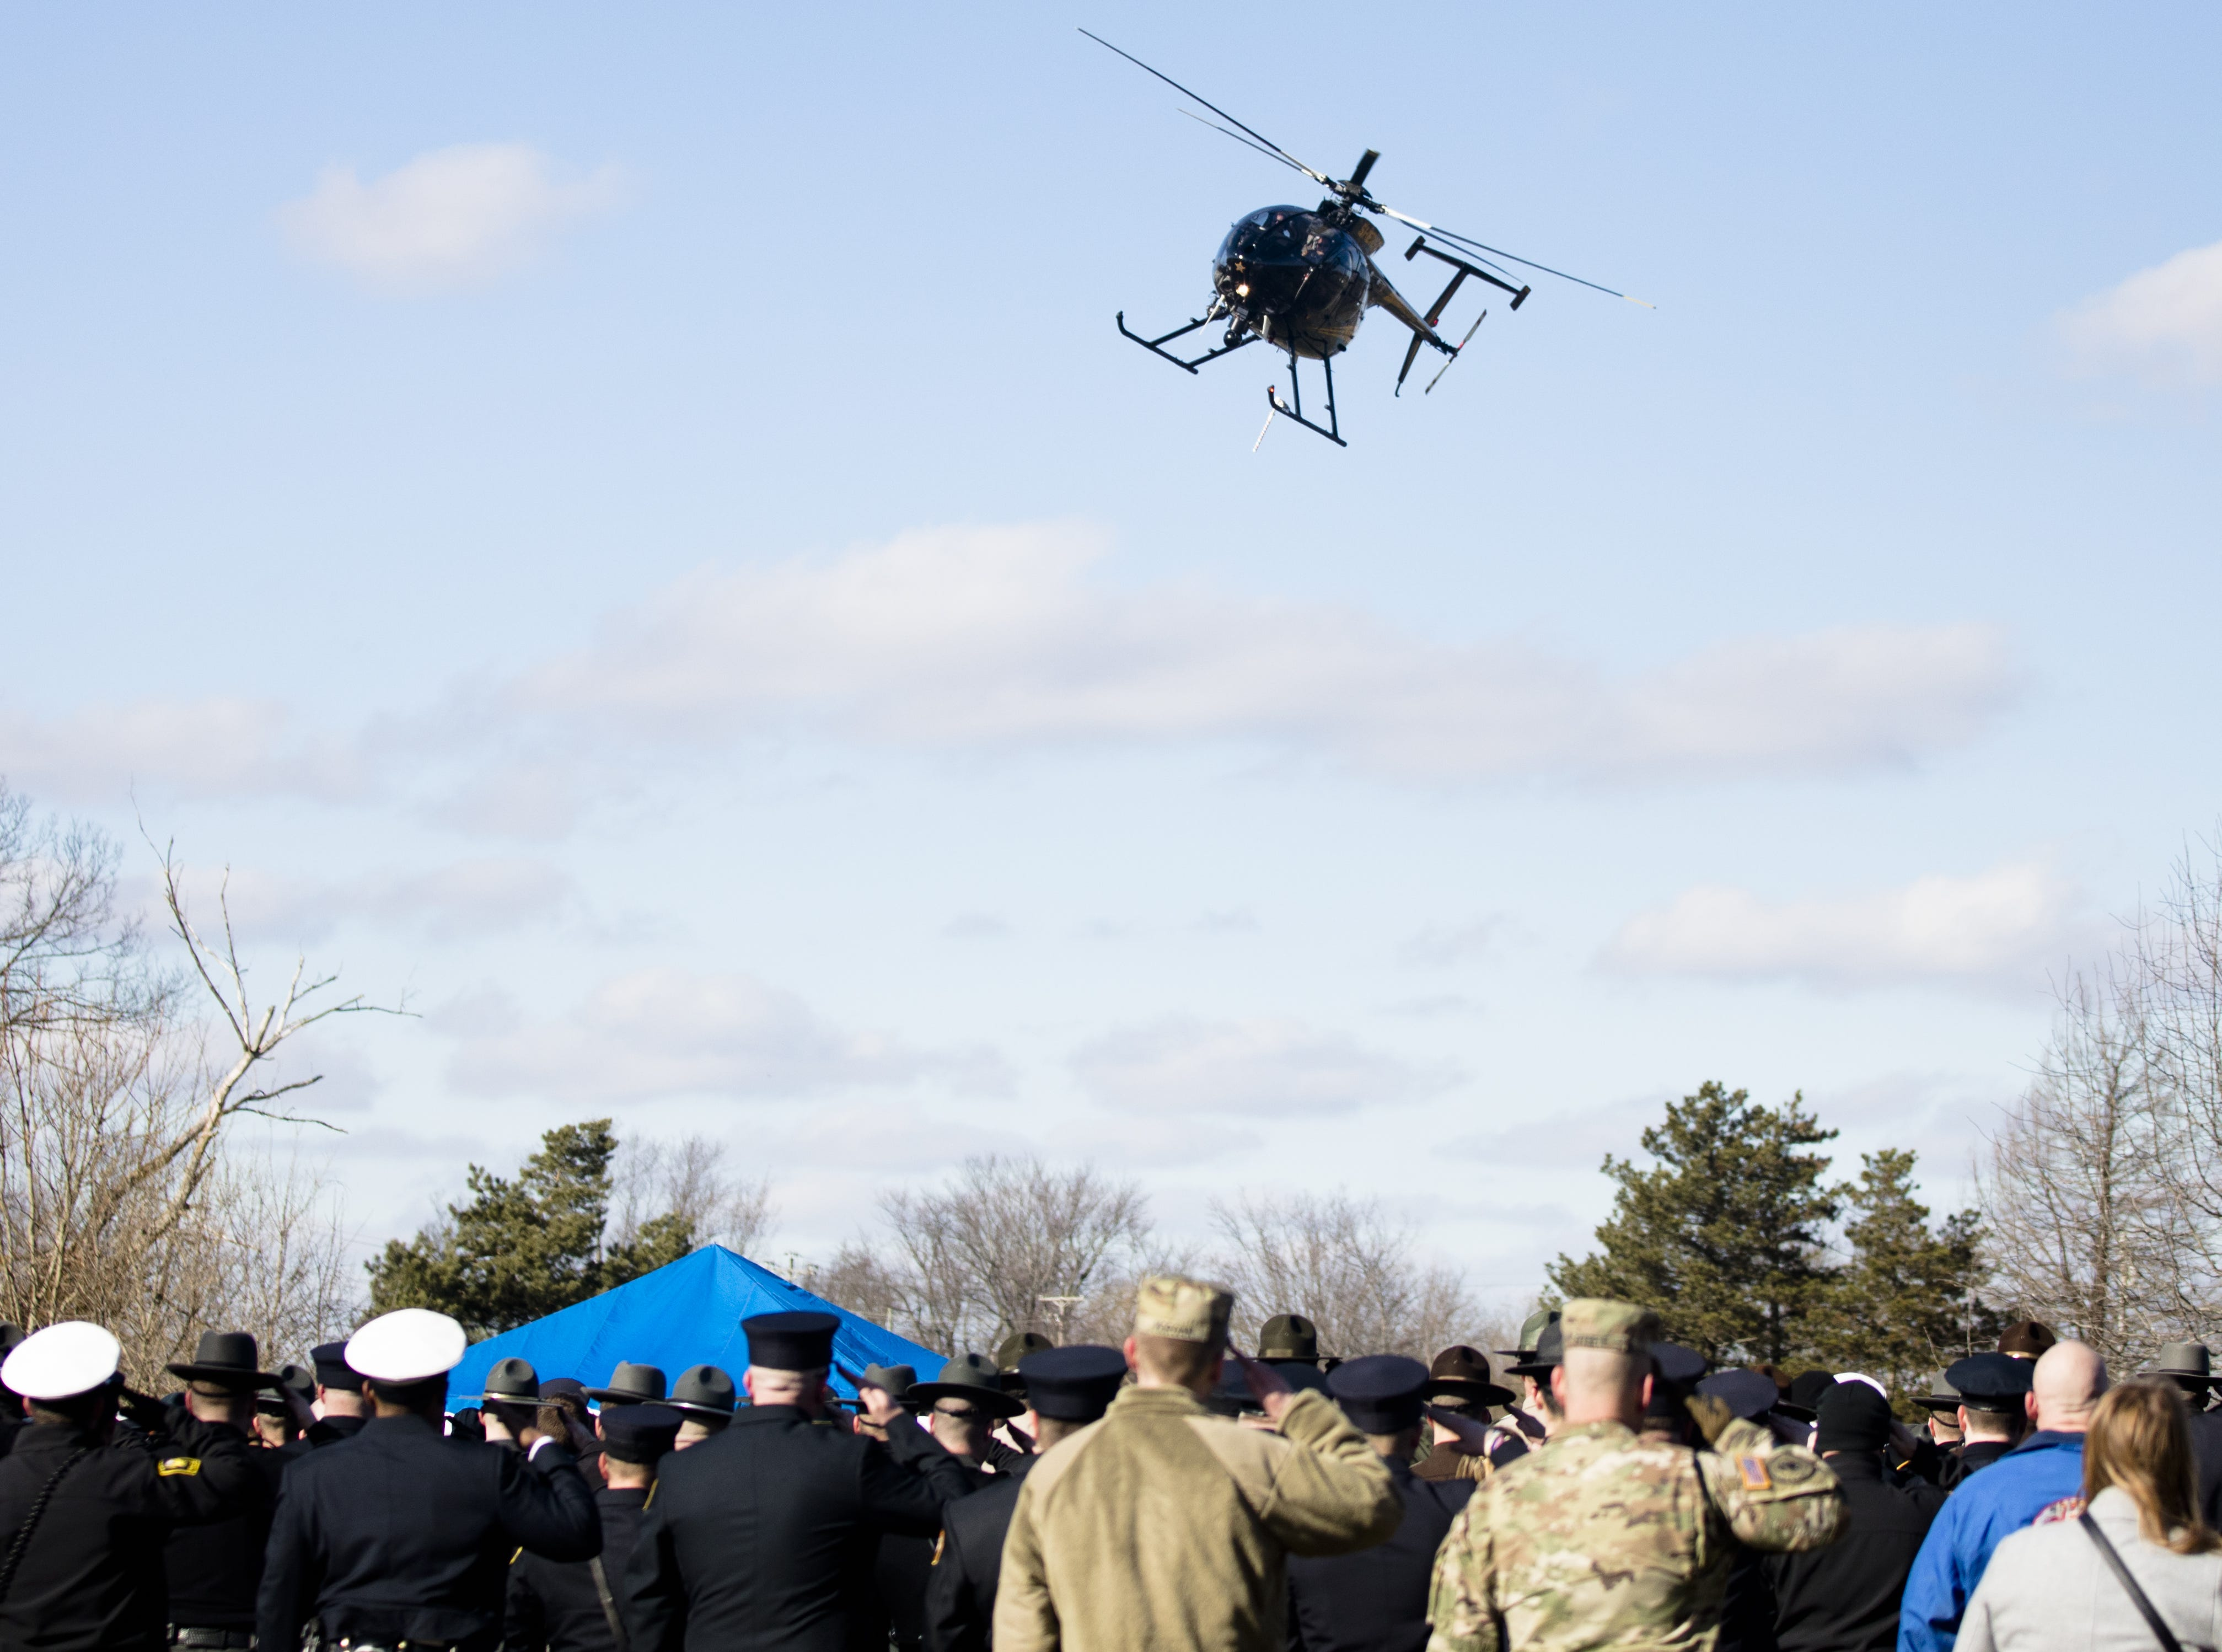 A helicopter performs a fly over during the burial service of Detective Bill Brewer, a 20-year veteran of the Clermont County Sheriff's Office, on Friday, Feb. 8, 2019, at Pierce Township Cemetery in Cincinnati. Brewer, 42, of Pierce Township, died in the line of duty. He was shot Feb. 2 during a standoff. Deputy Brewer is survived by a wife and 5-year-old son.